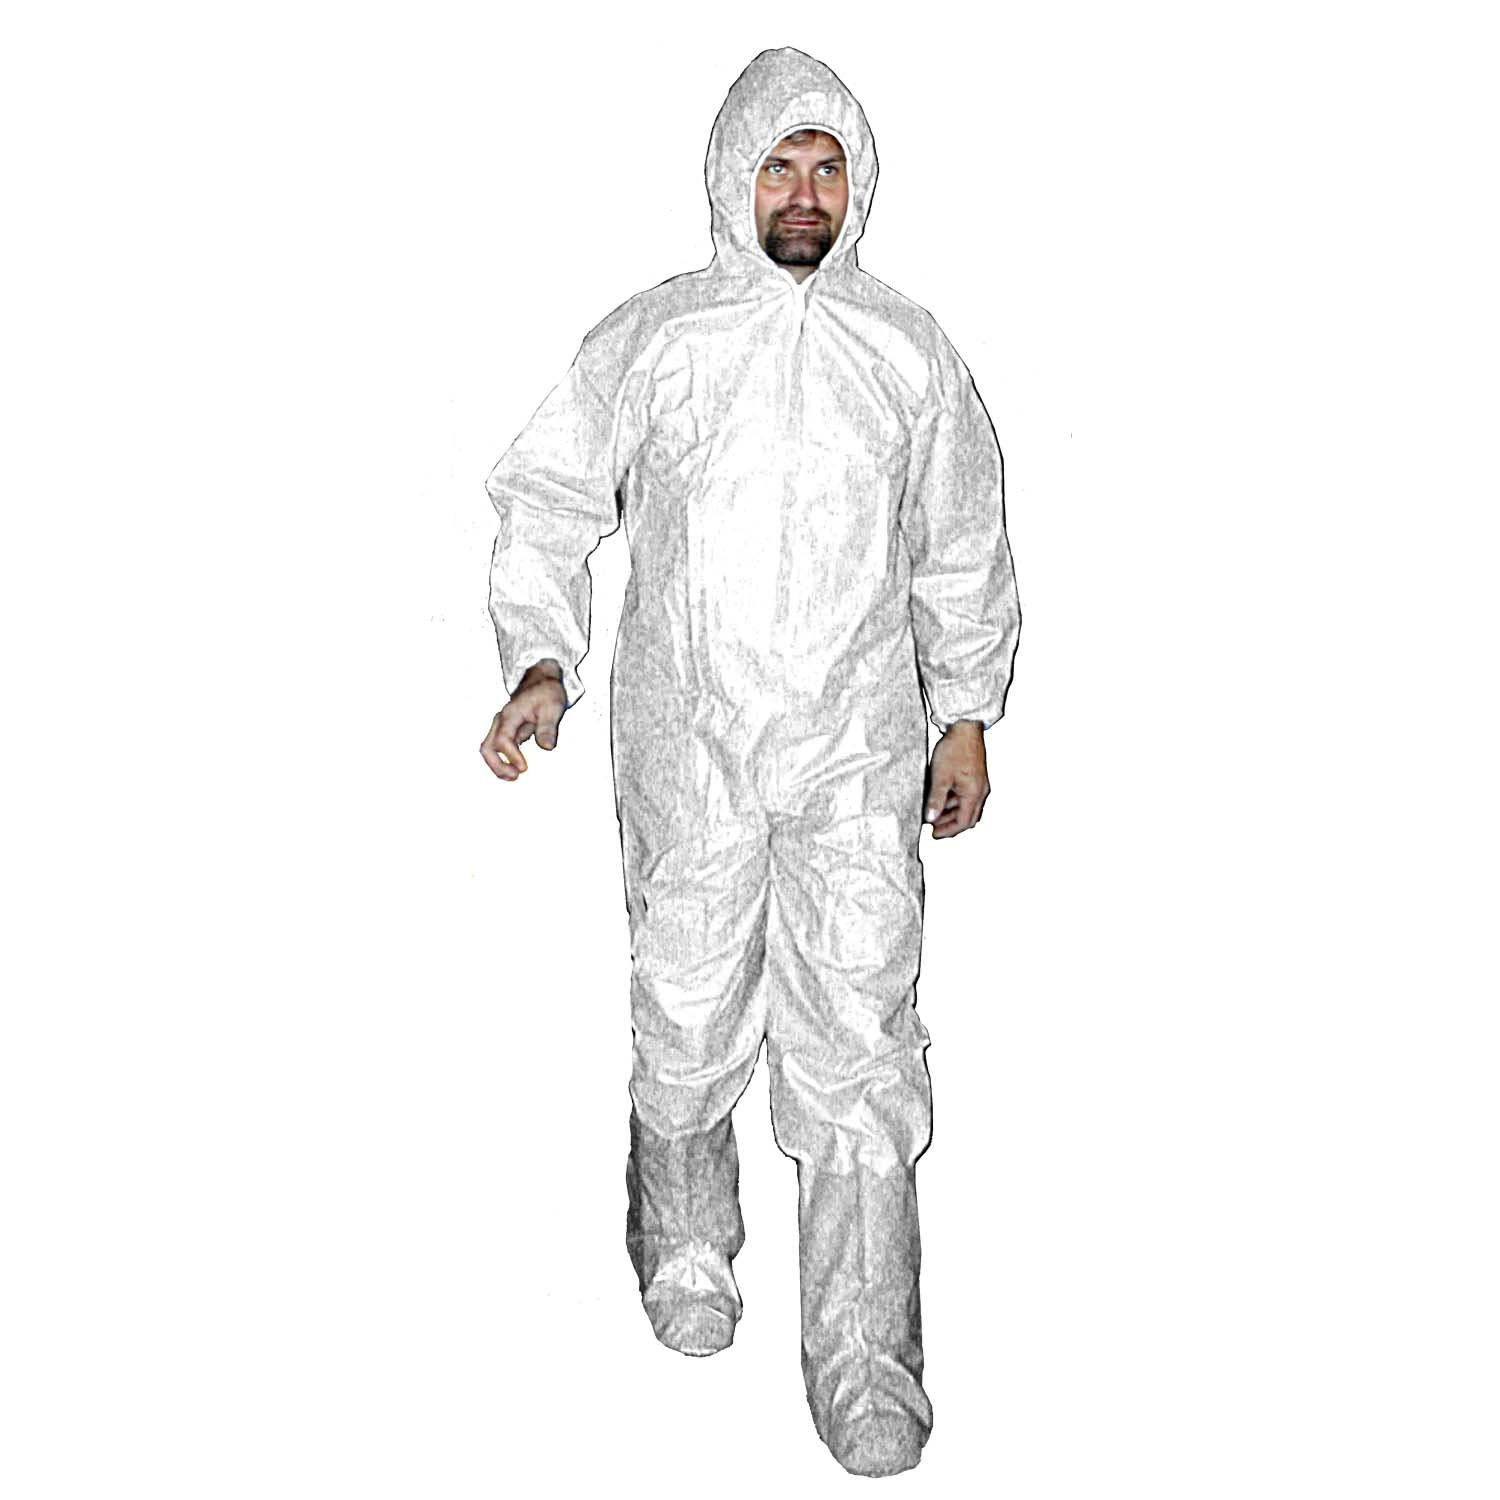 Enviroguard Polypropylene Coverall with Attached Hood and Boots, Disposable, Elastic Wrists, White, Medium, 45 gram (Case of 25)